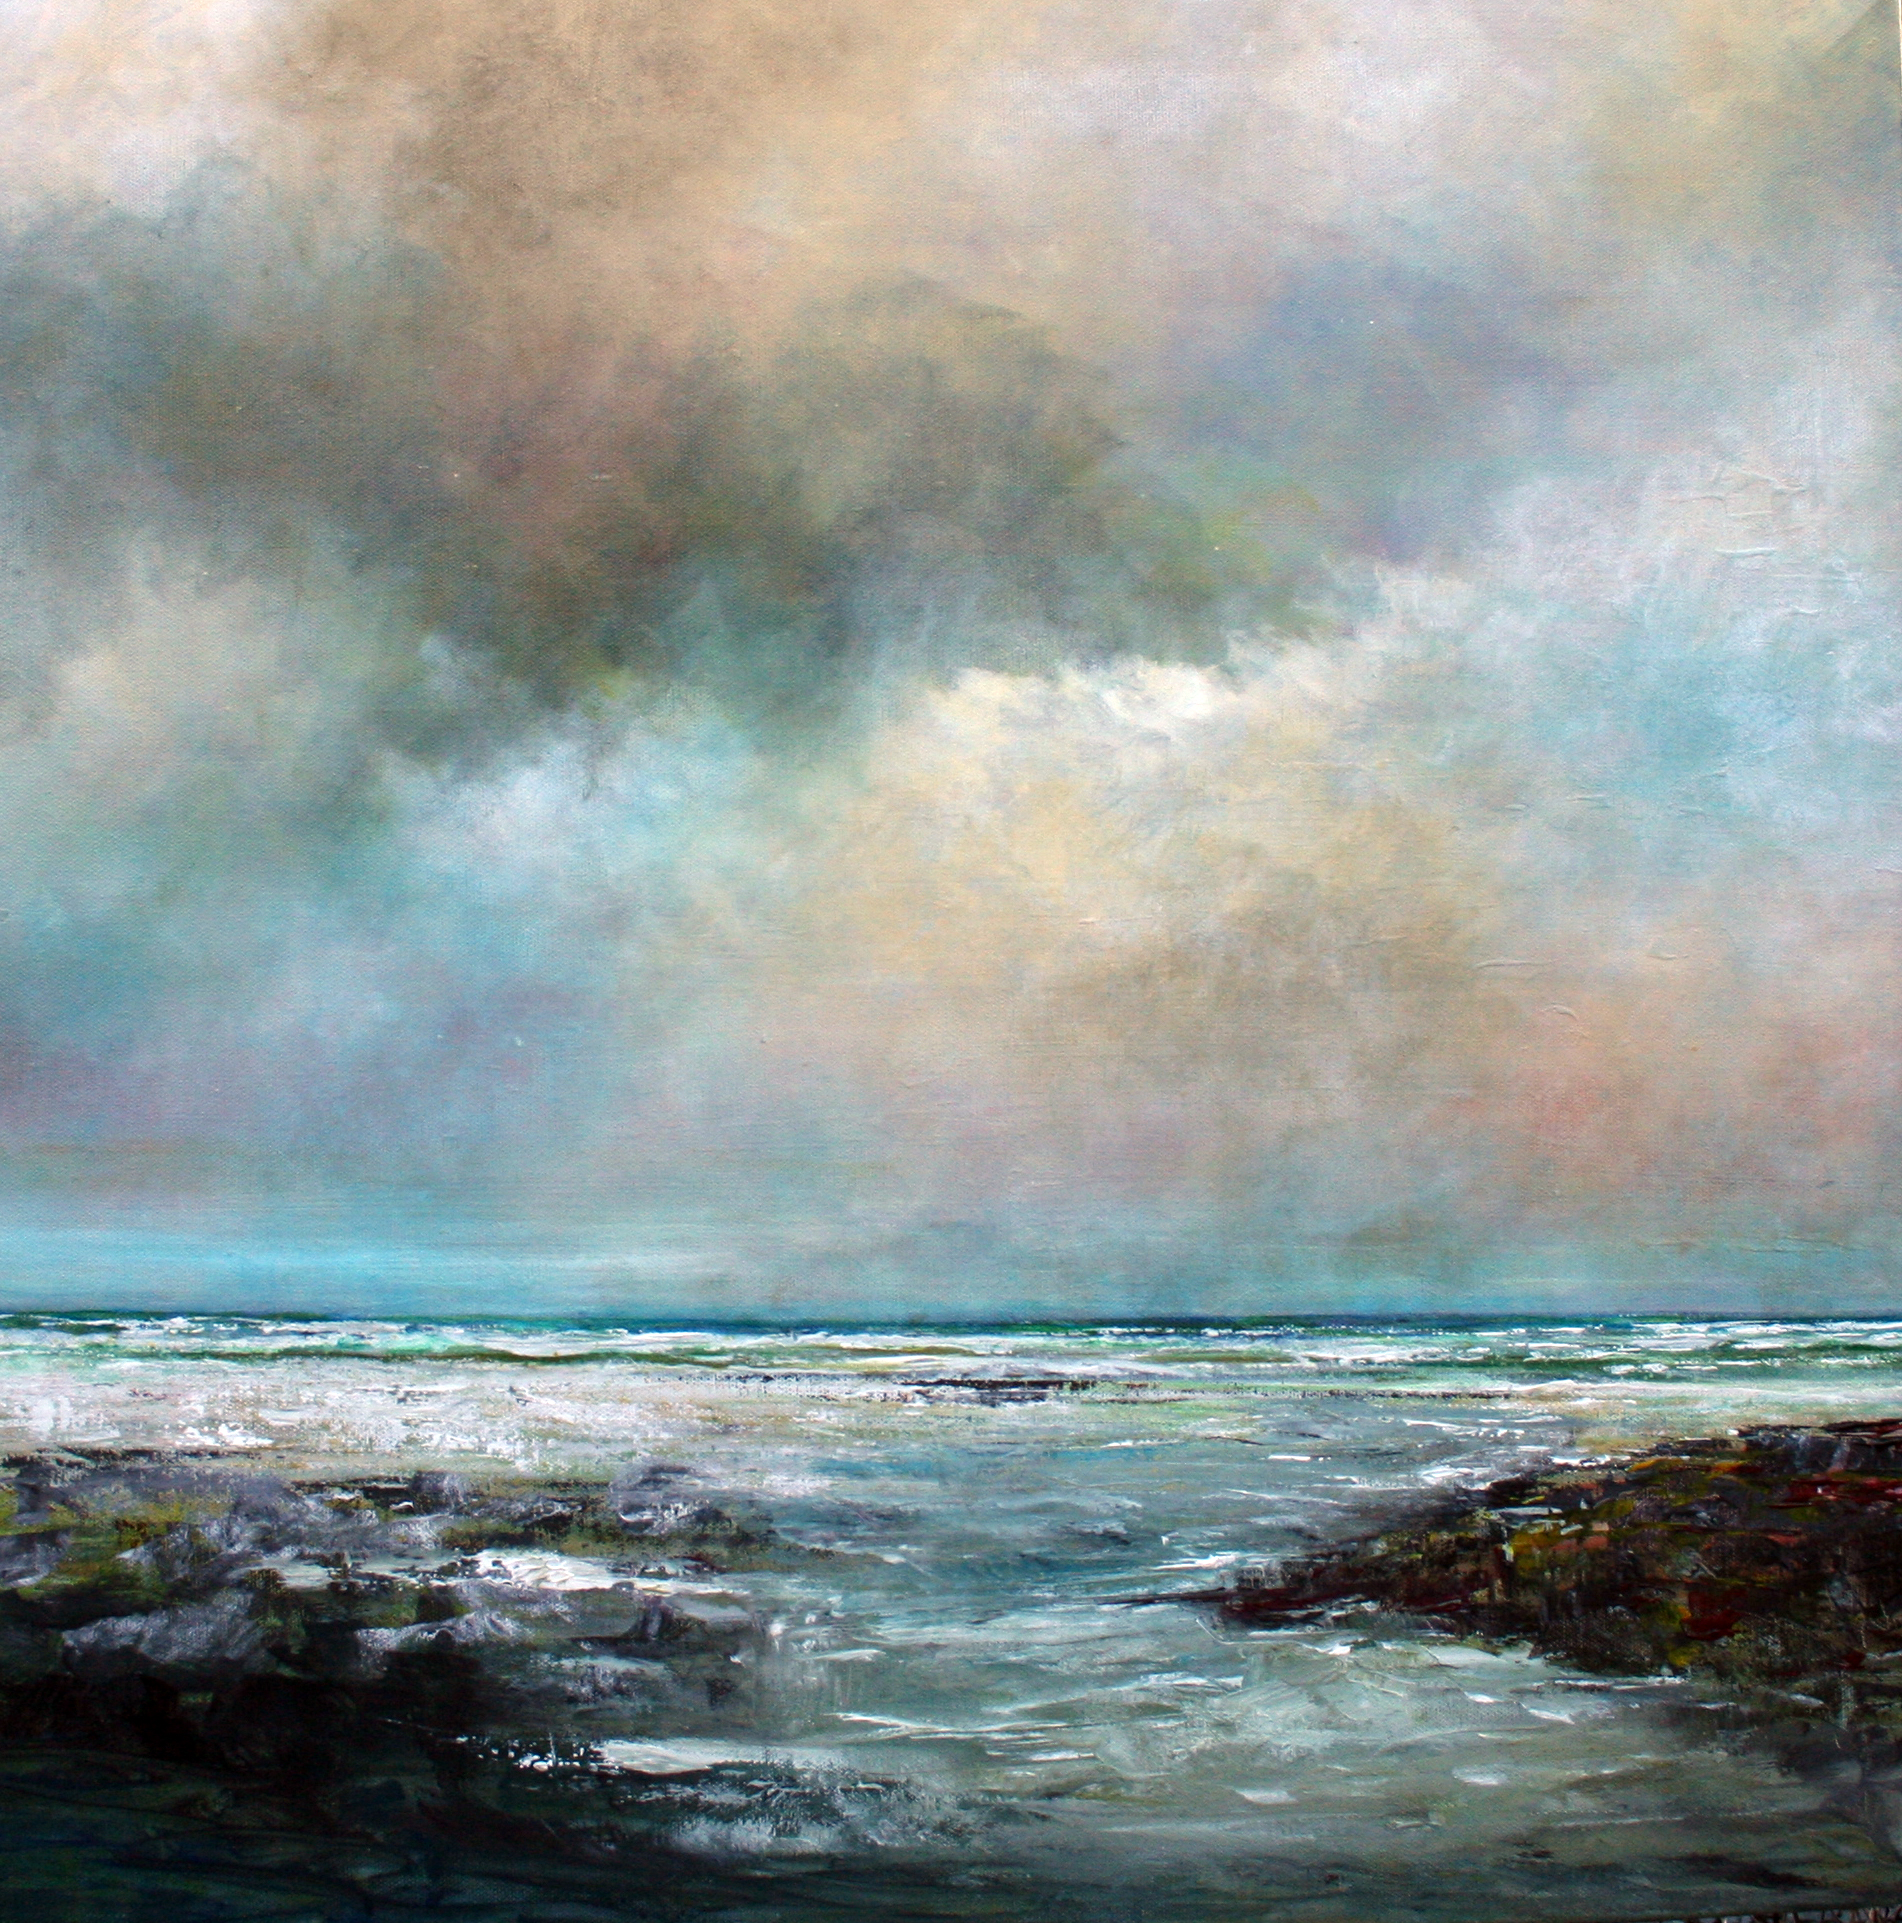 Sky Colours by John Tregembo at the Saffron Walden Gallery